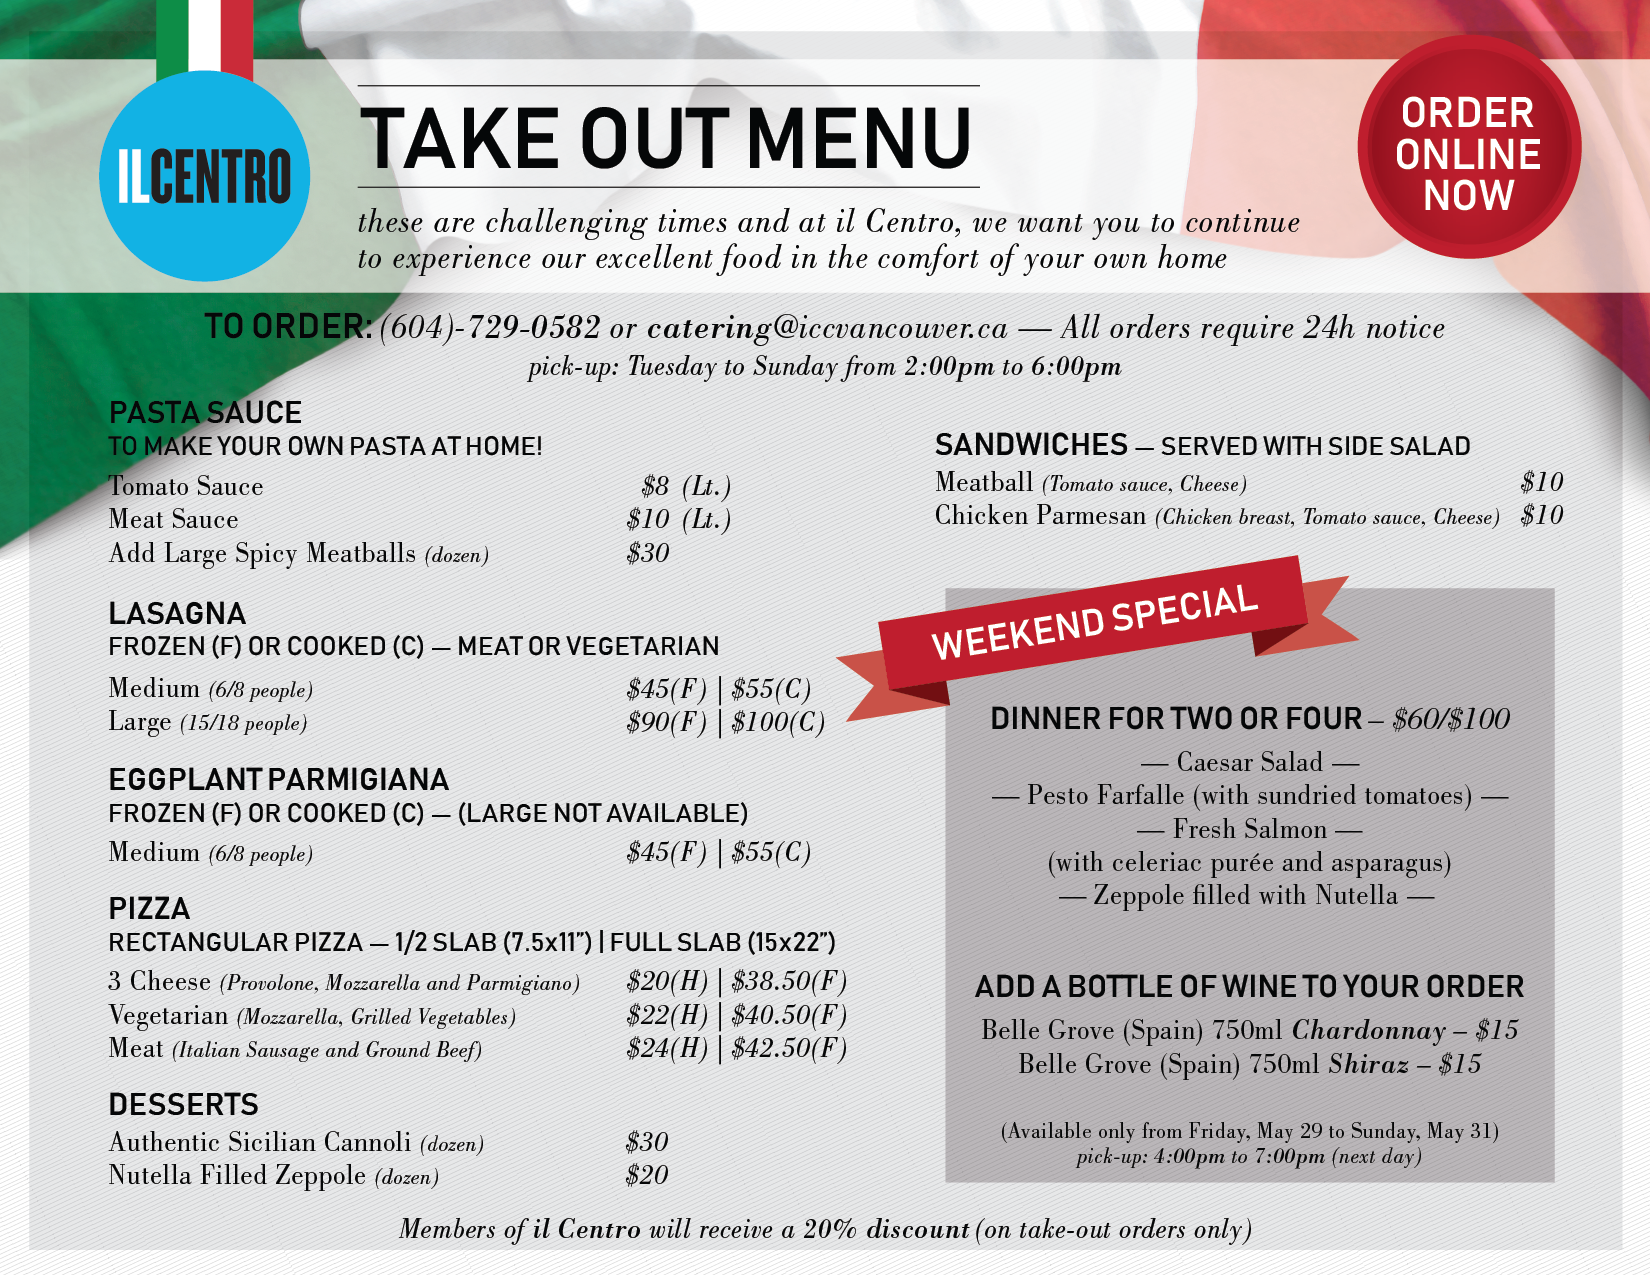 Take Out Menu_05.25.20